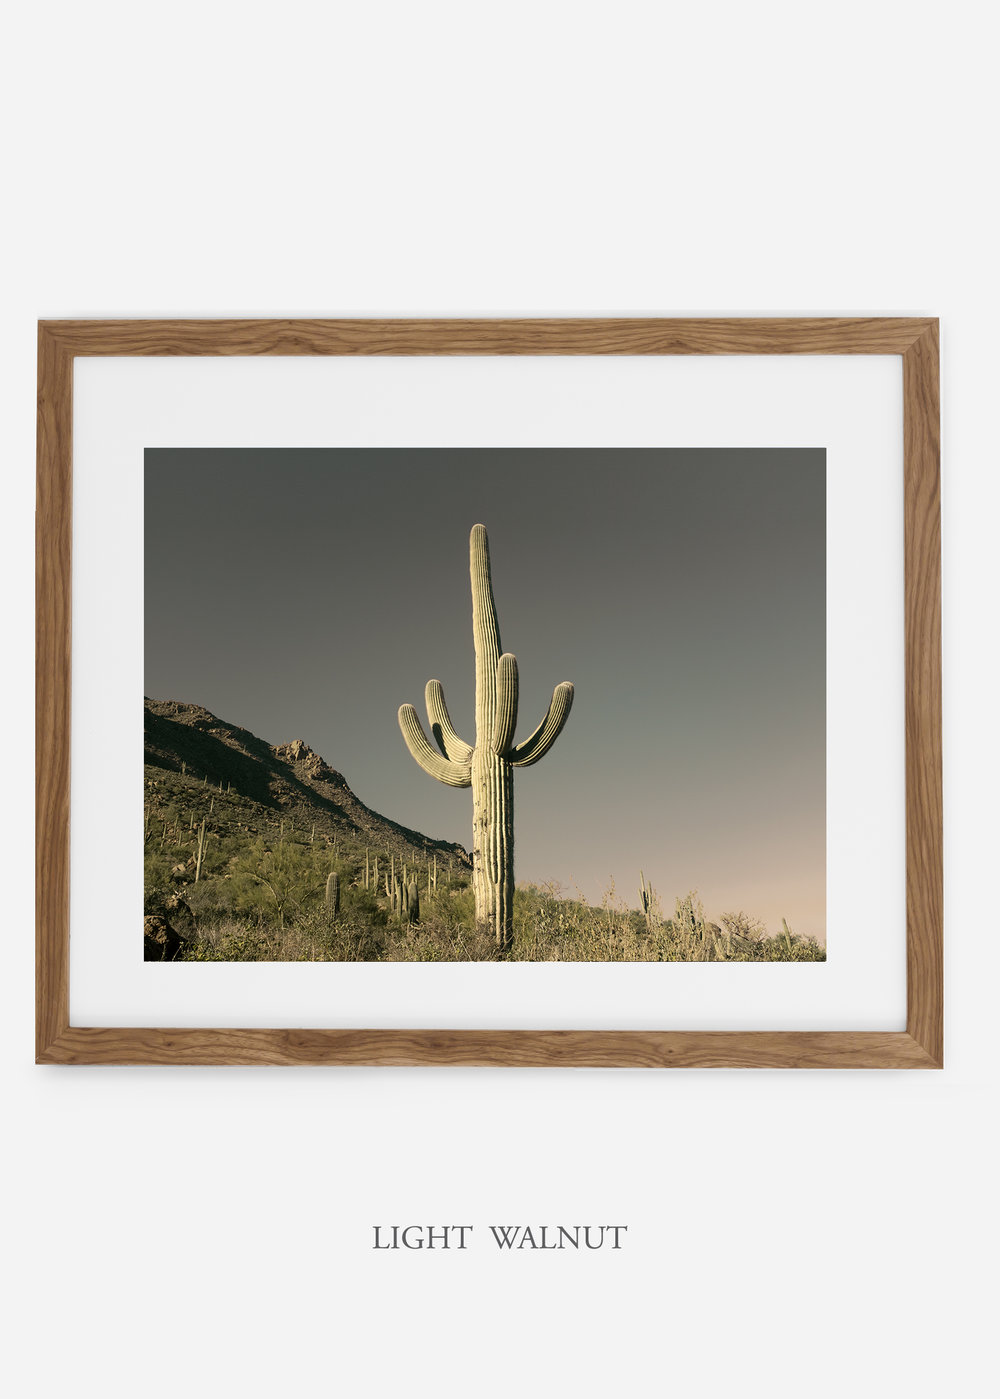 lightwalnutframe-saguaroNo.19-wildercalifornia-art-wallart-cactusprint-homedecor-prints-arizona-botanical-artwork-interiordesign.jpg